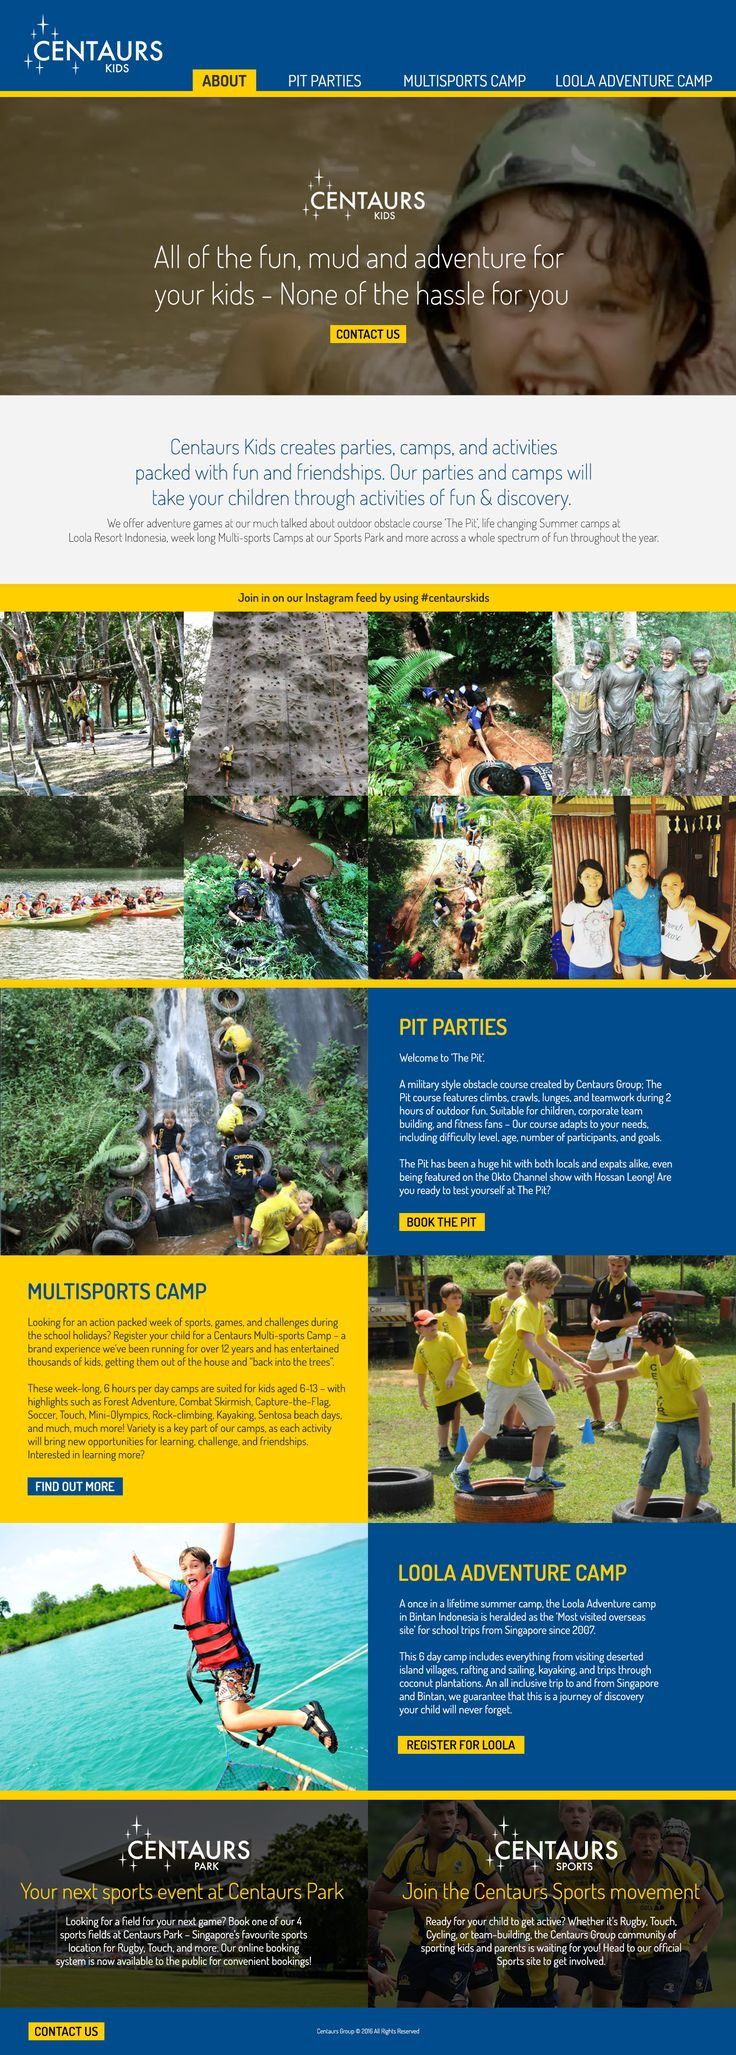 Website design & development for Singapore's pit parties and camp venue, Centaurs Kids